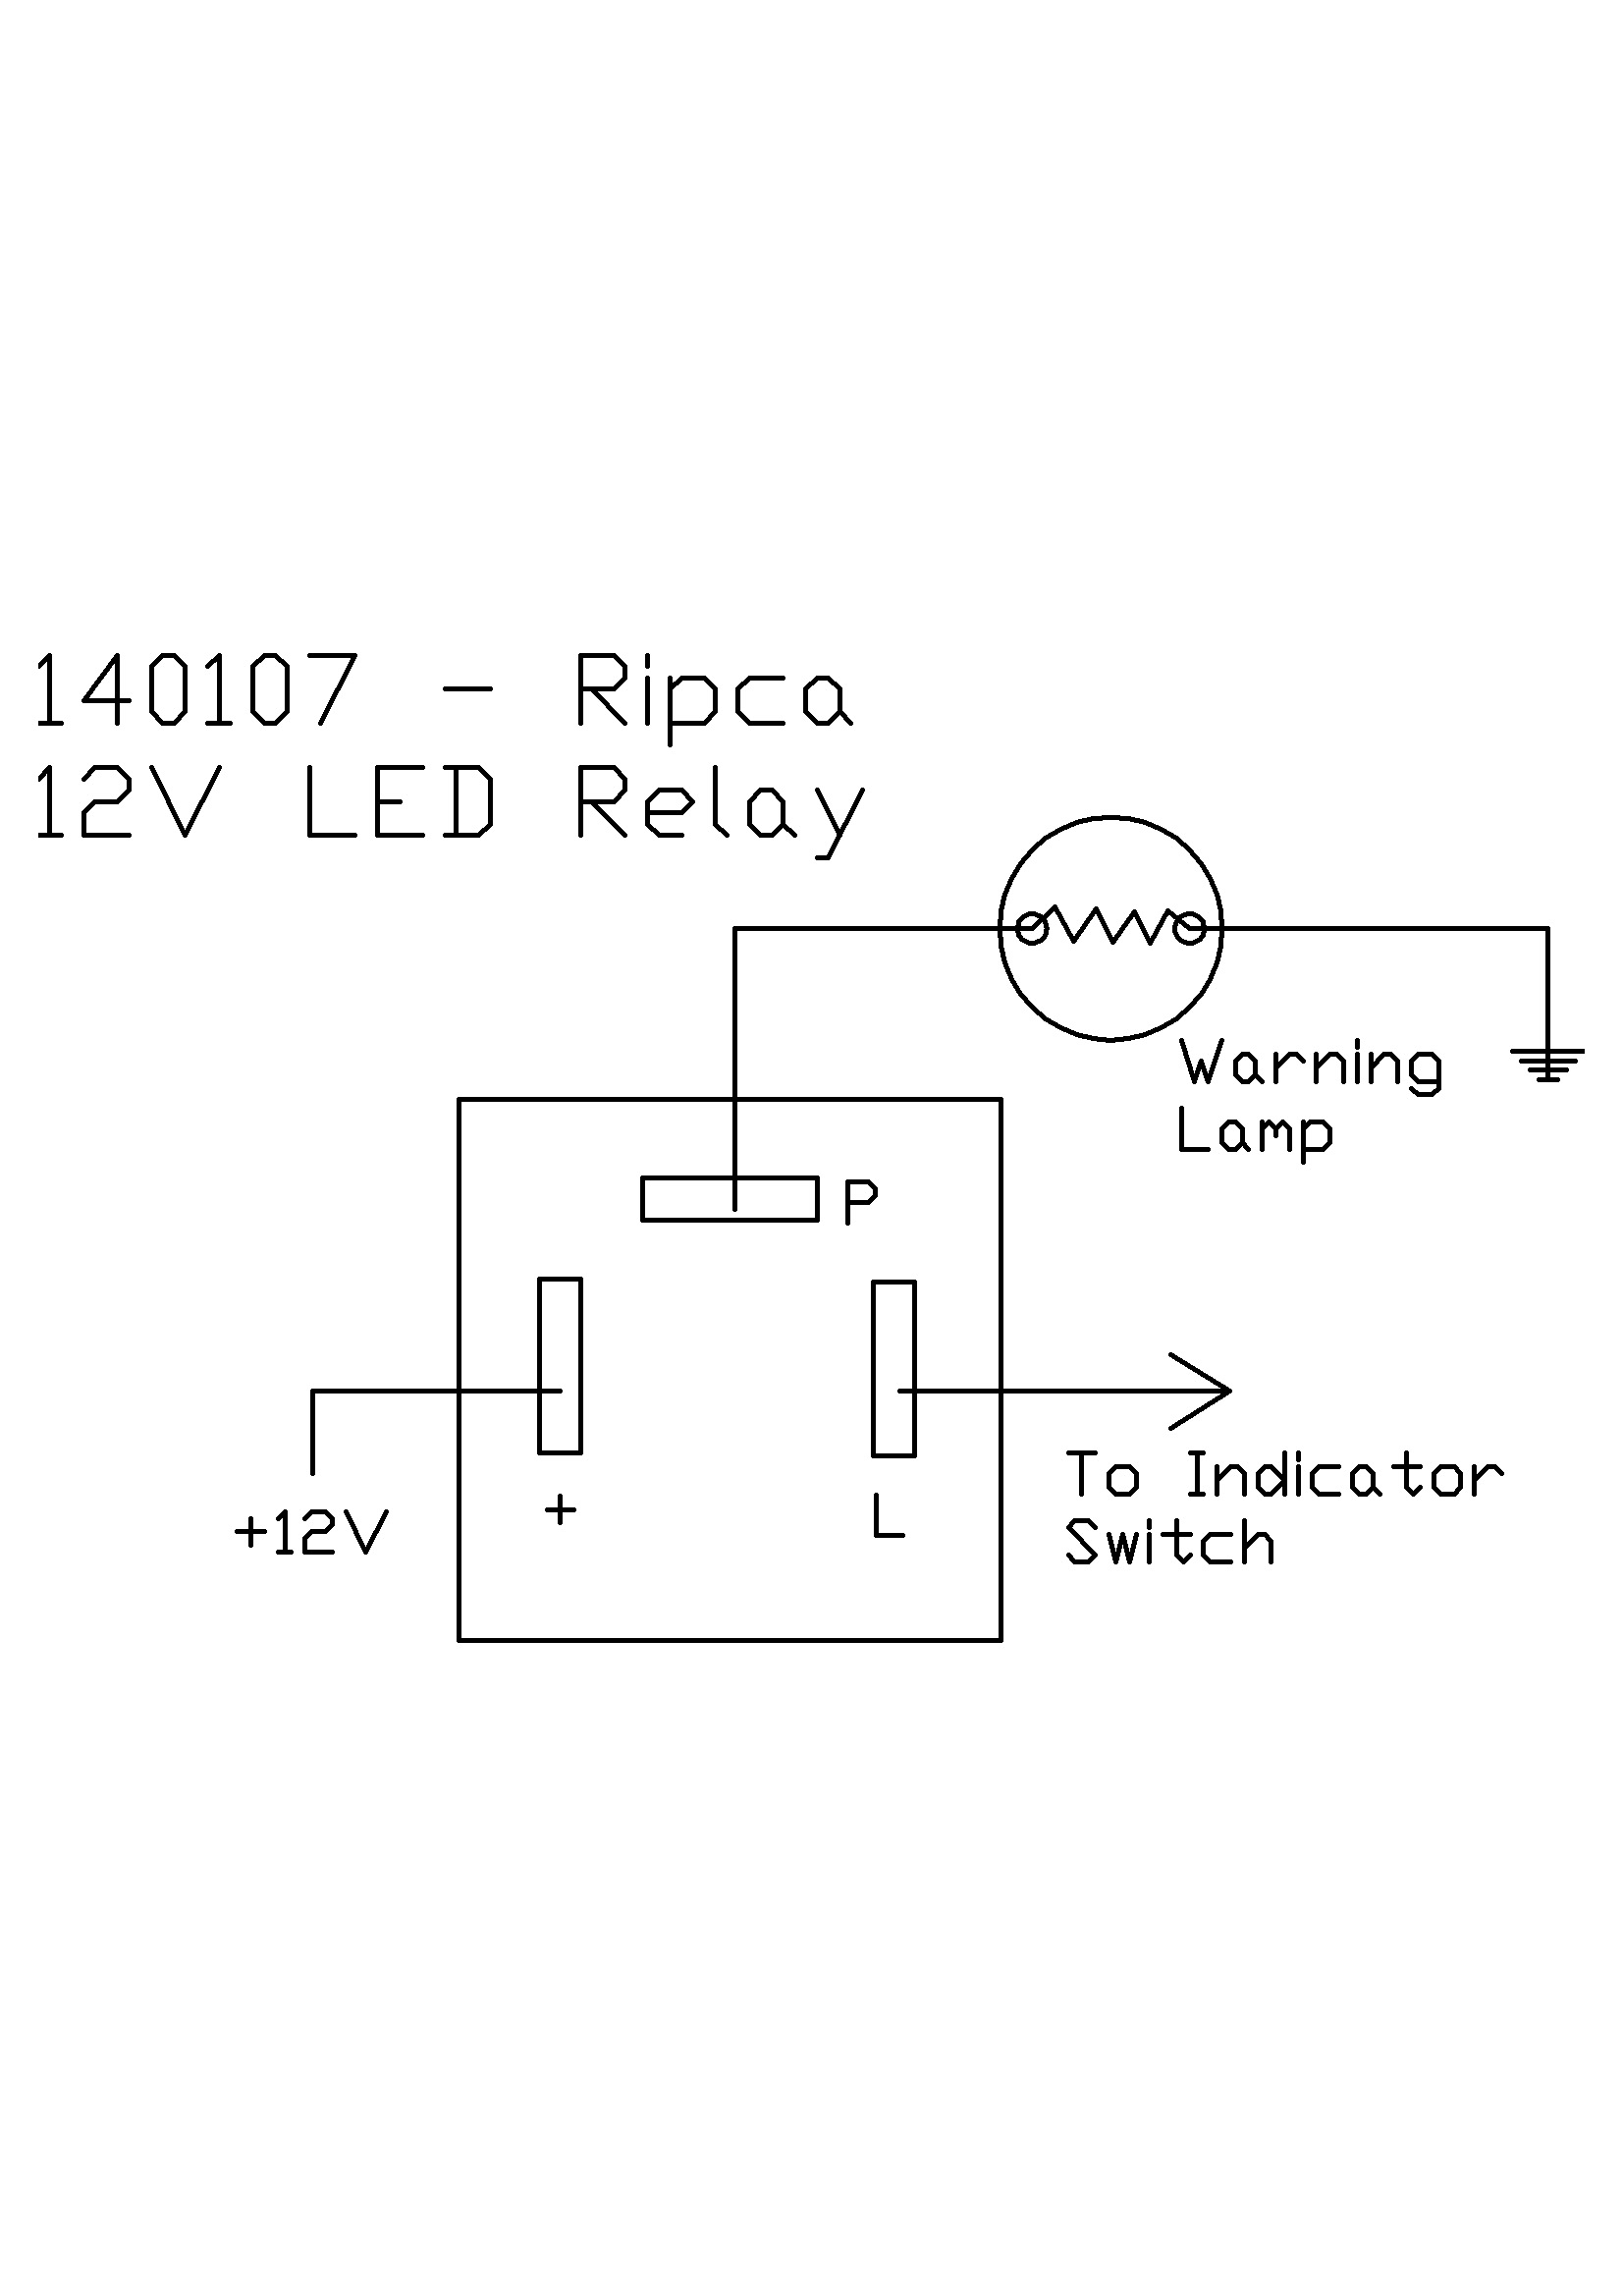 12 Volt Led Flasher Unit Series Wiring Downloads